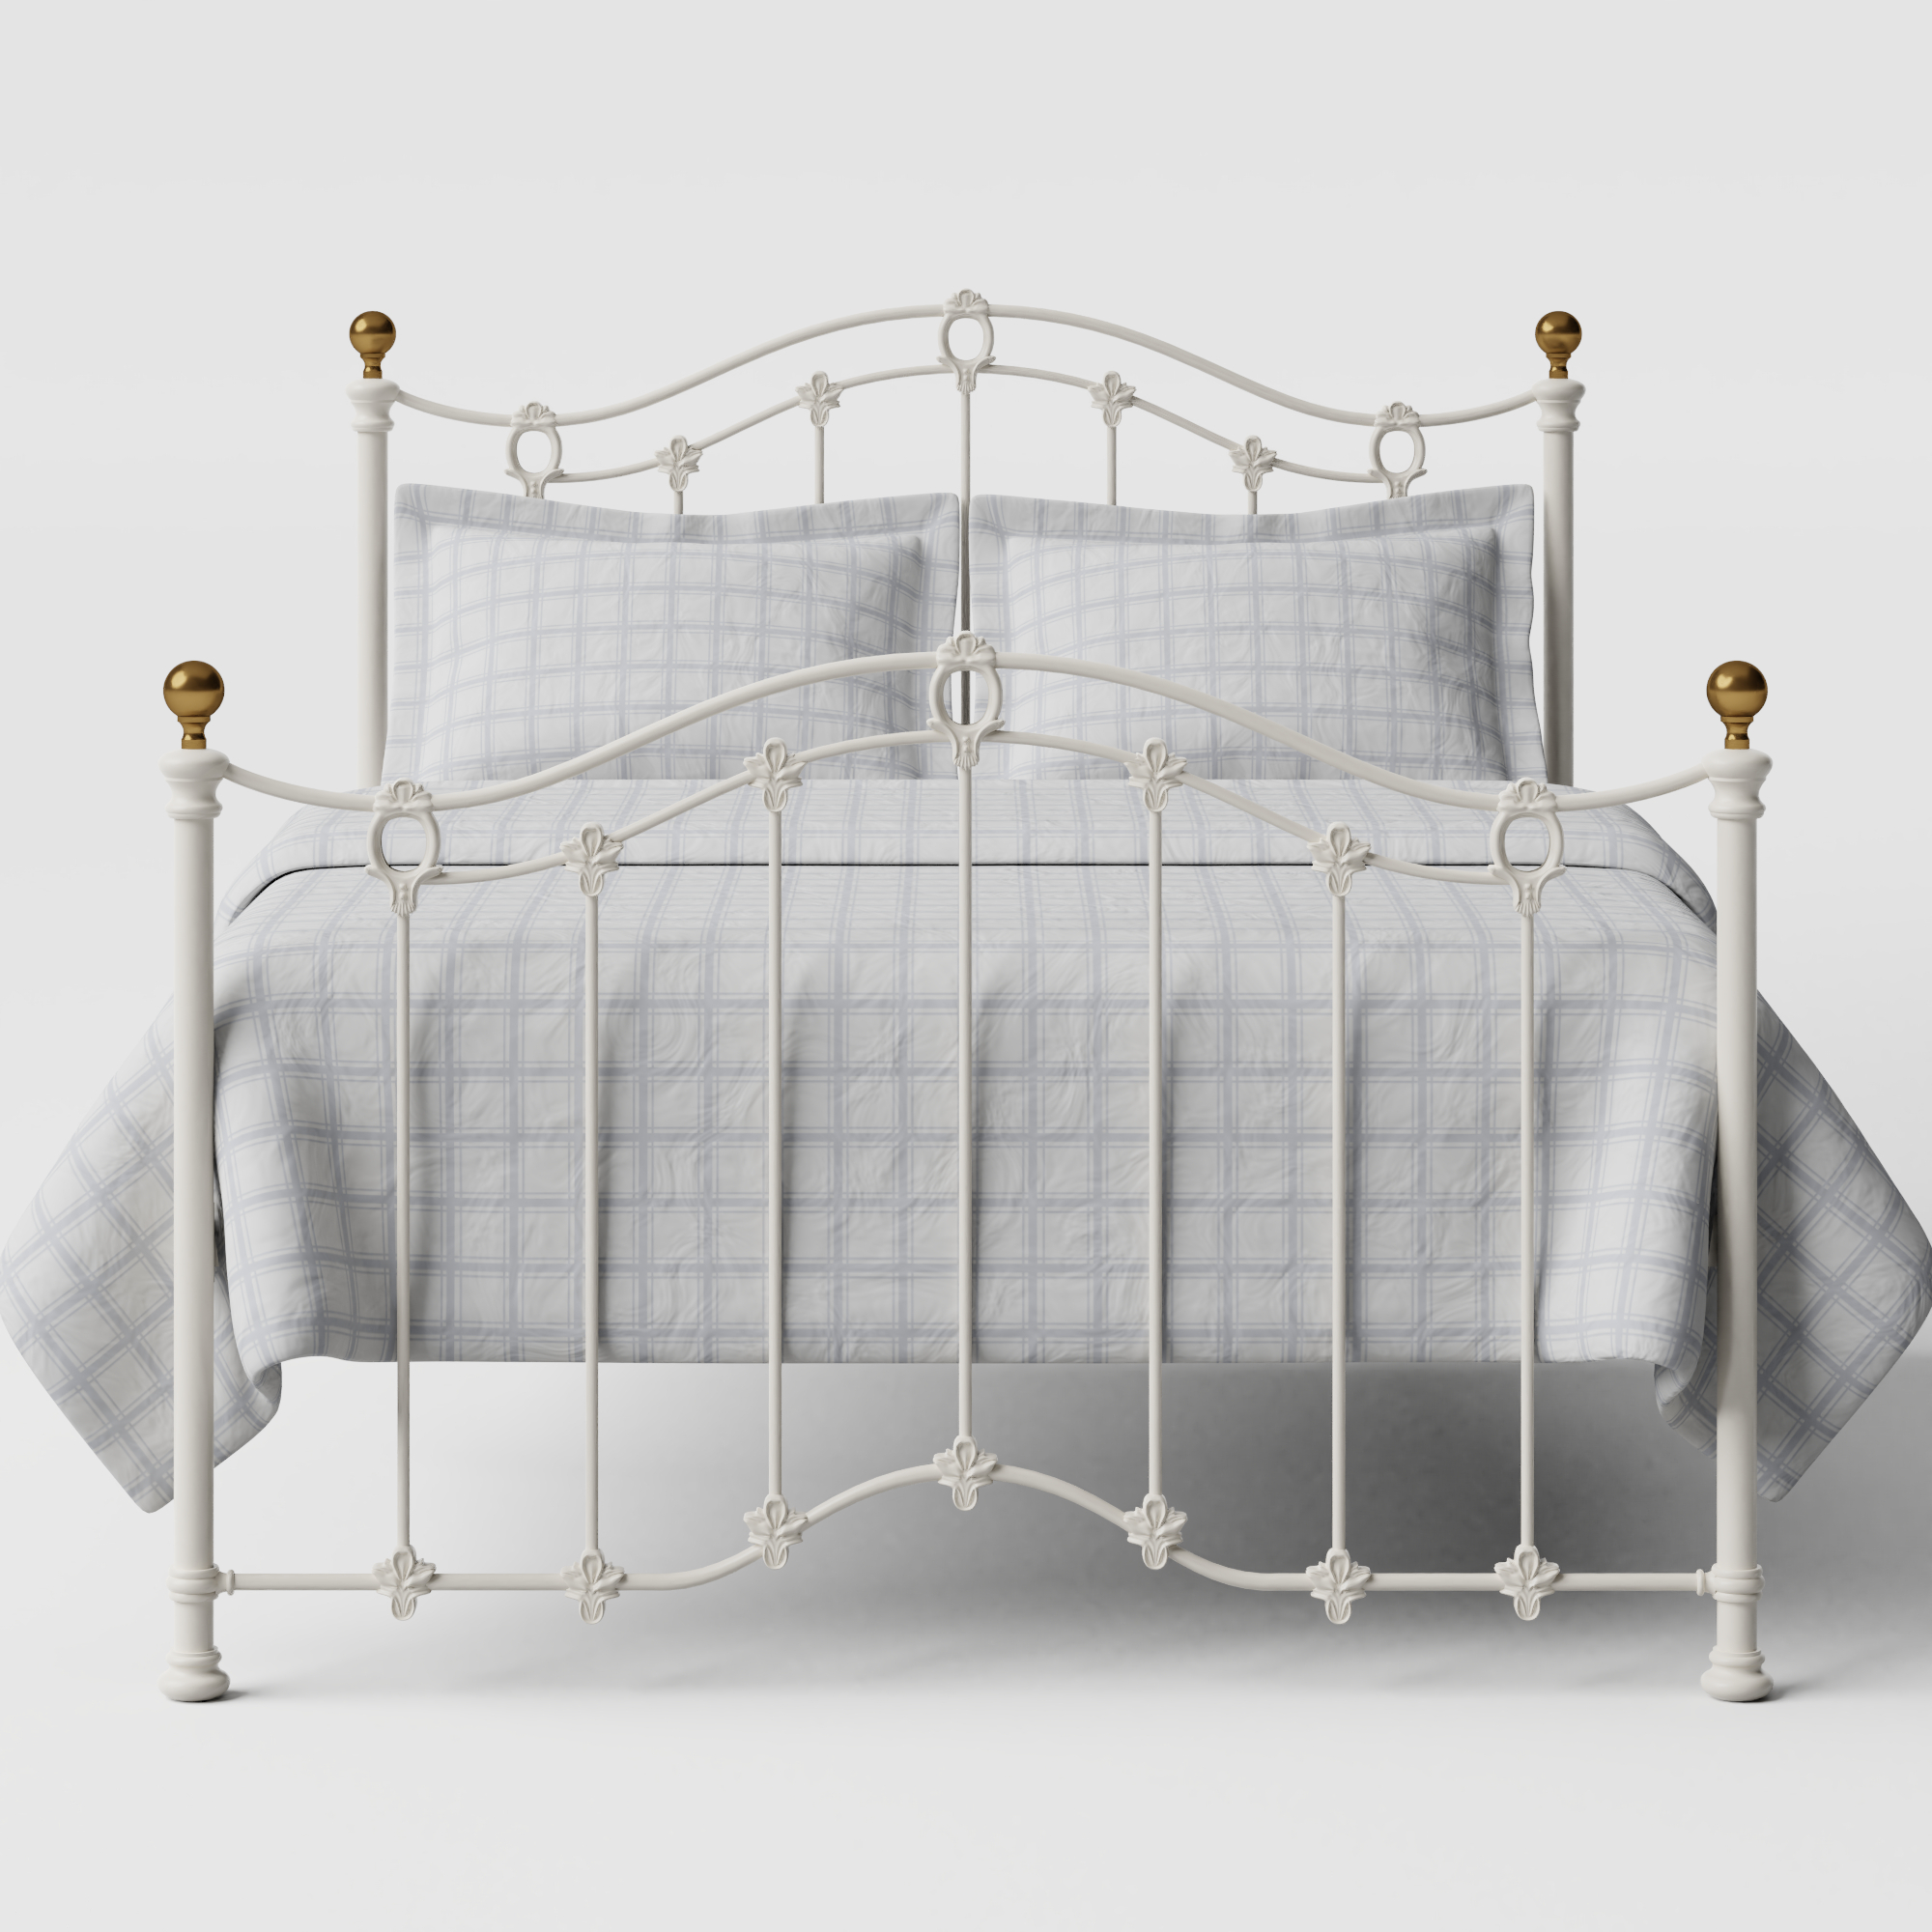 Clarina iron/metal bed in ivory